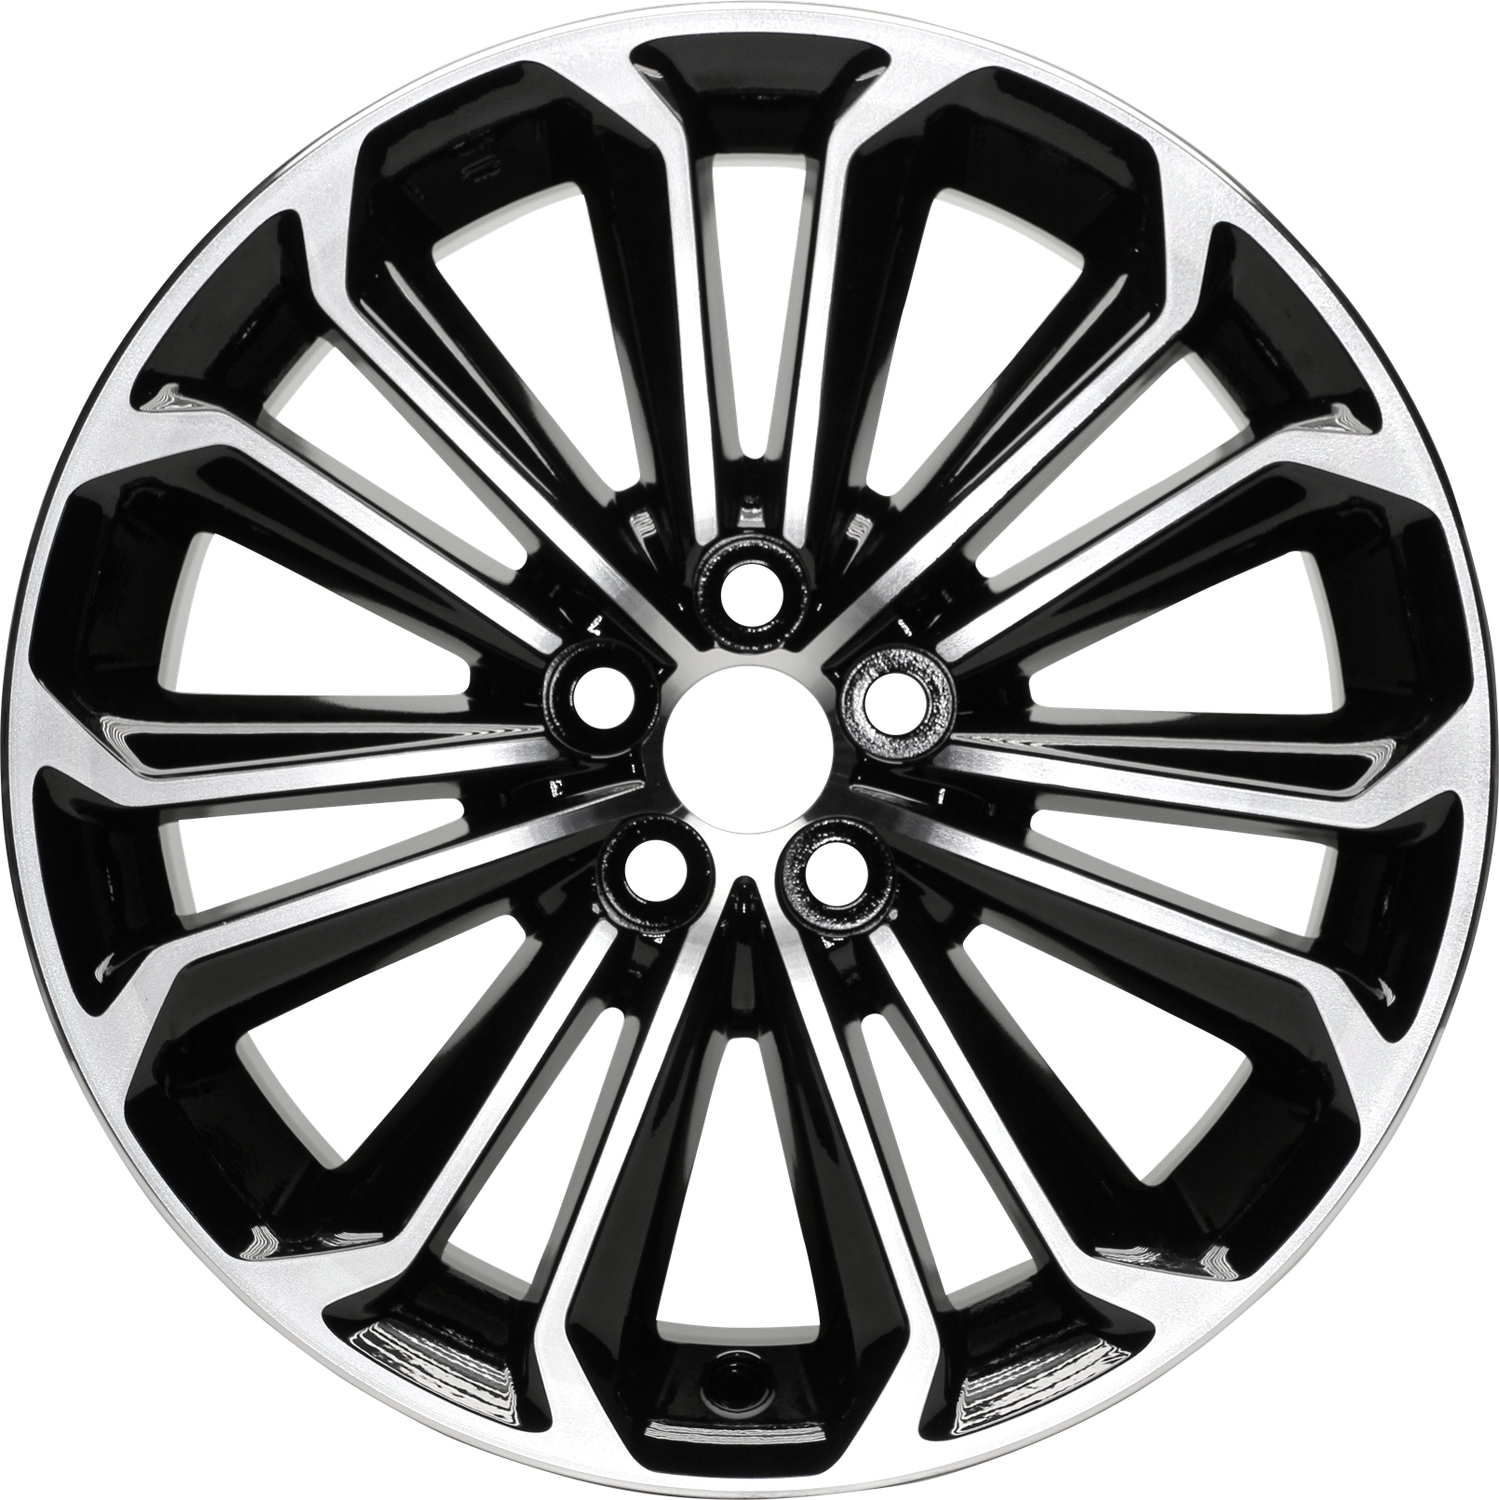 """New Replacement 17"""" Alloy Wheel Rim for 2014 2015 2016 Toyota"""